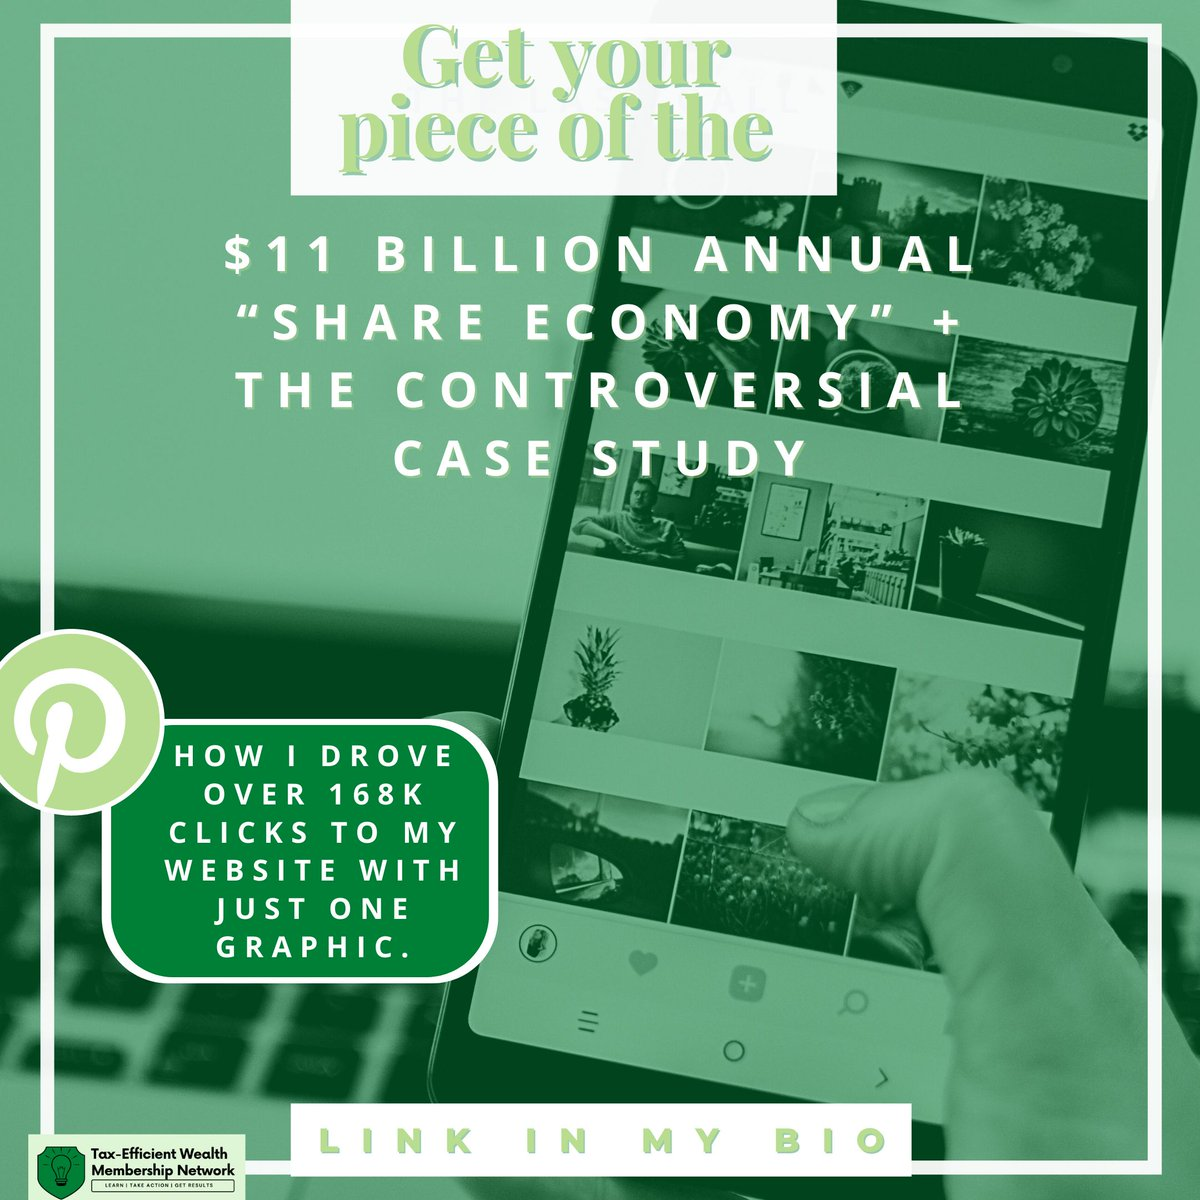 Last Call to download this awesome PDF Report and Catch the replay For the Perpetual Pinterest Marketing Webinar . . . #investment #toronto #business #reach #trending #trend #explore #explorepage #commerce #viral #finance #wealth #tips #advice #financialplanning #pinterest